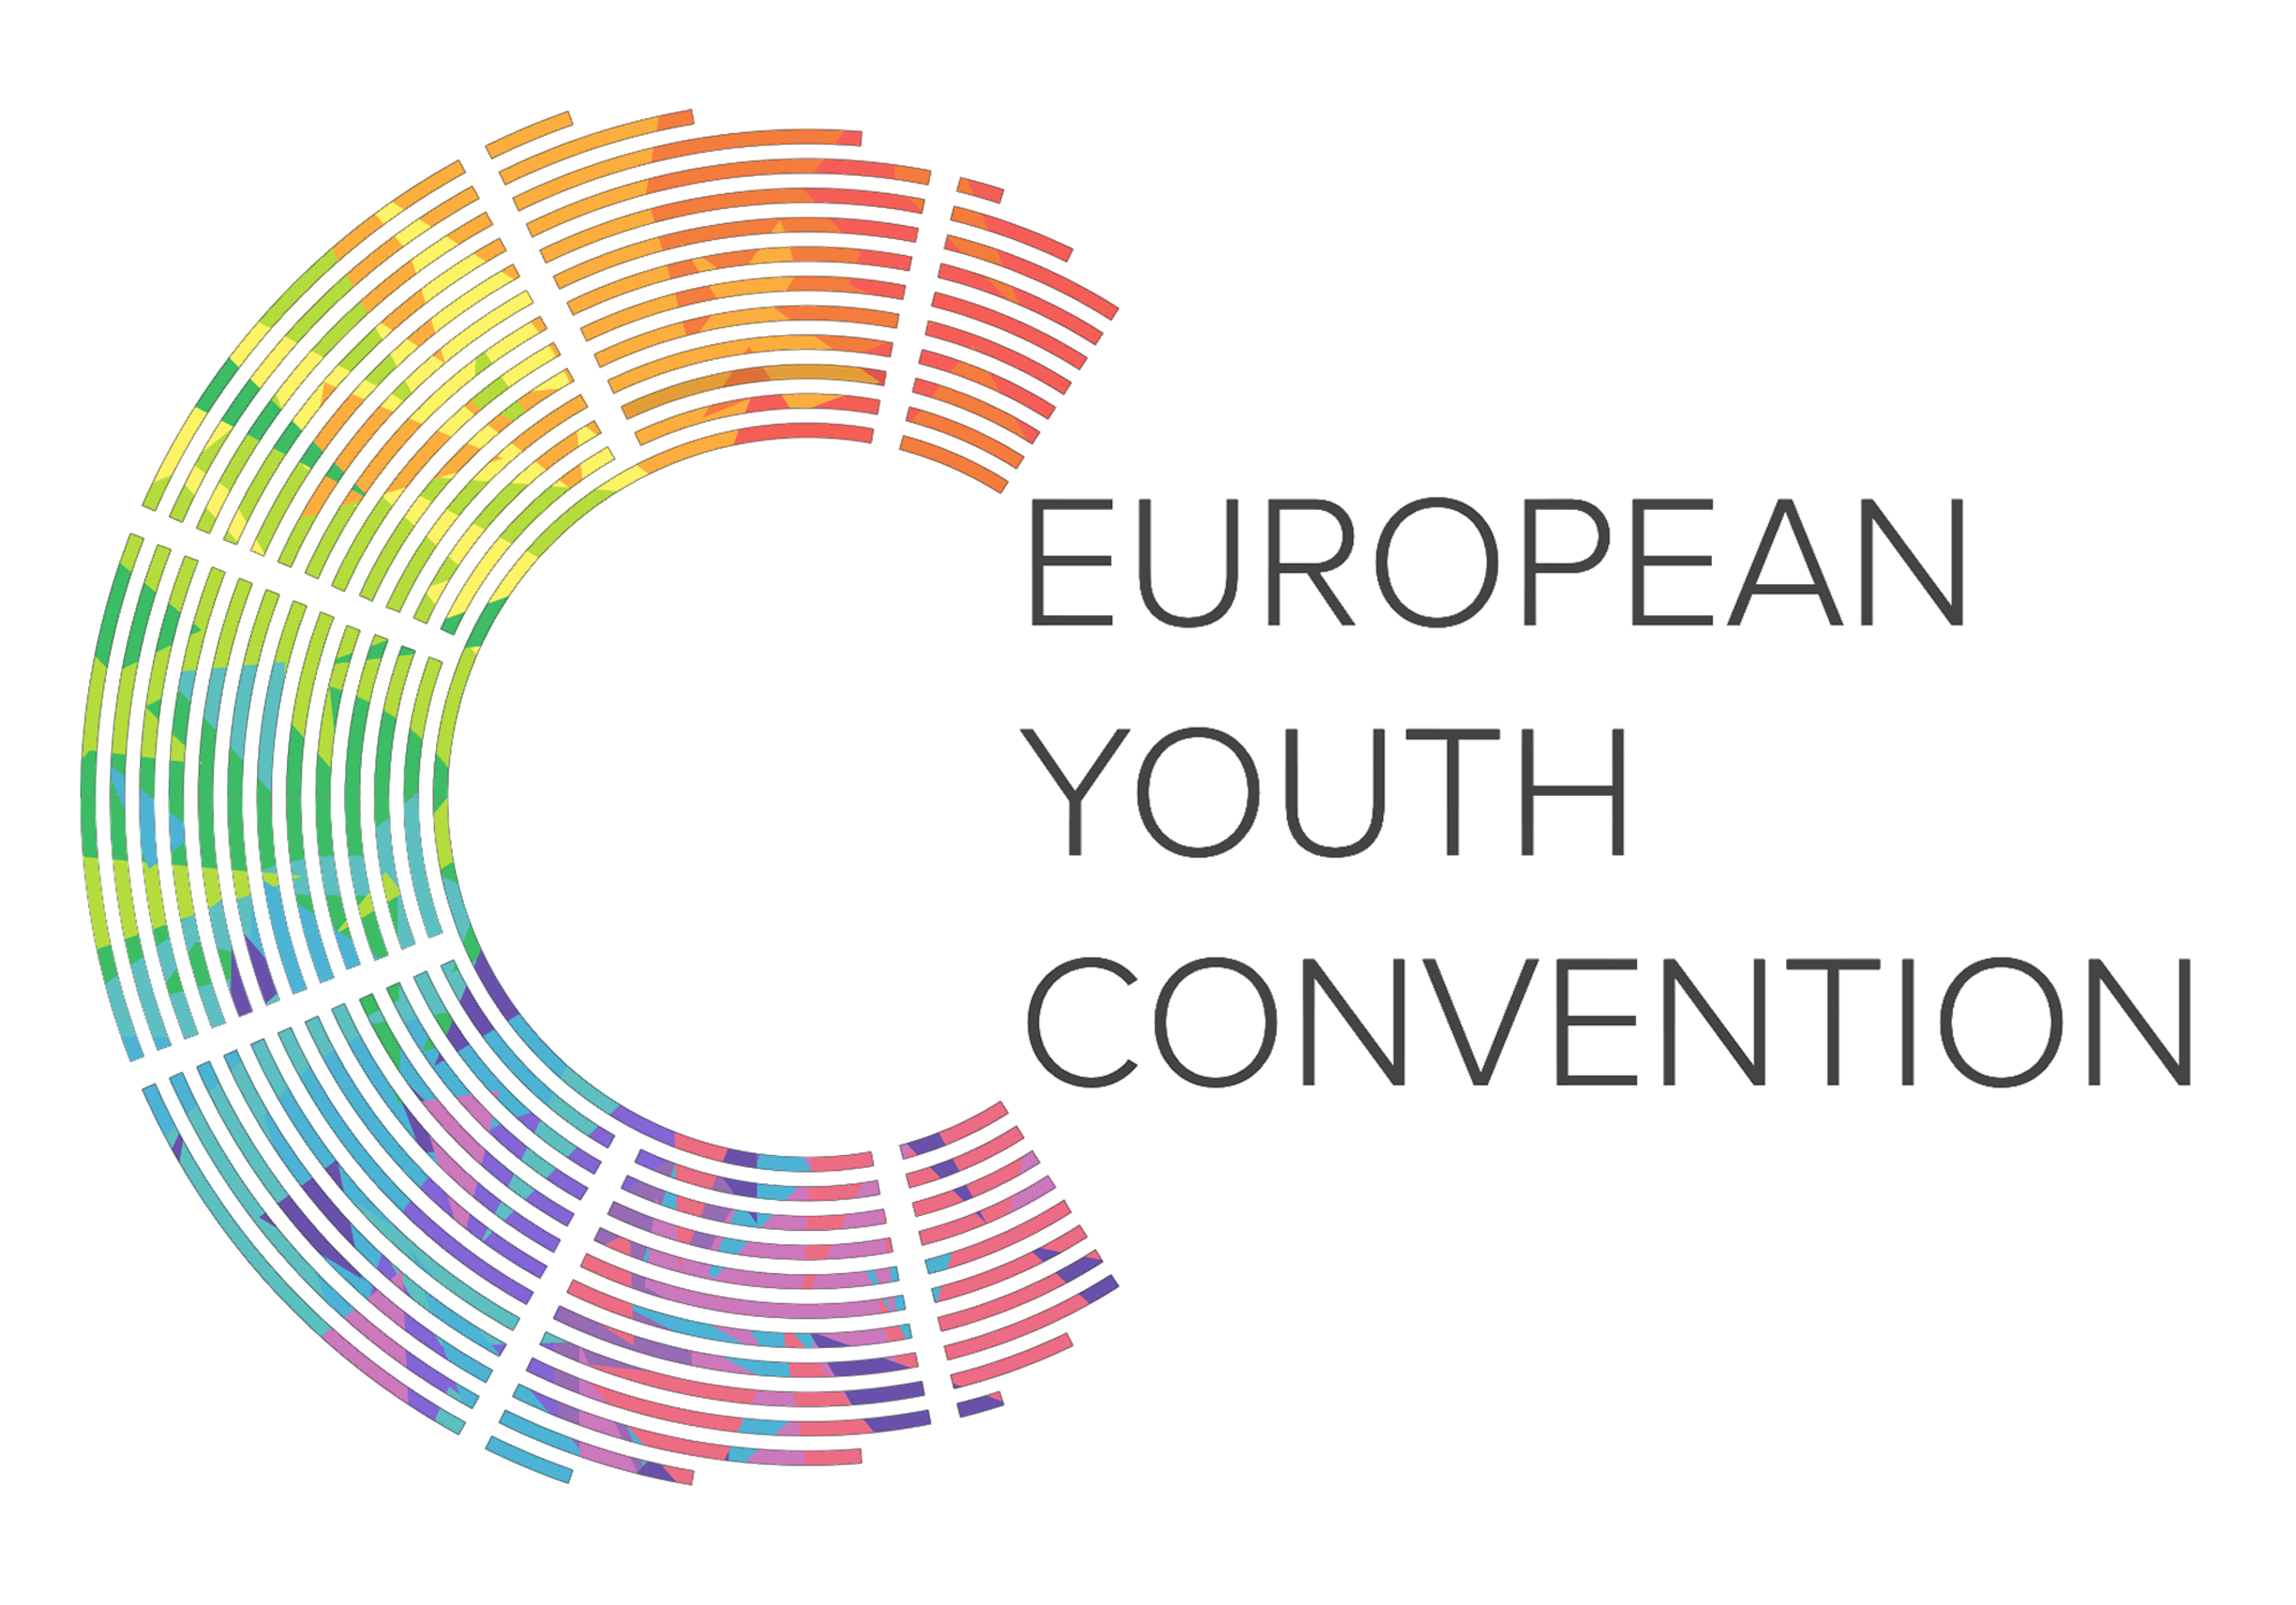 European Youth Convention Logo